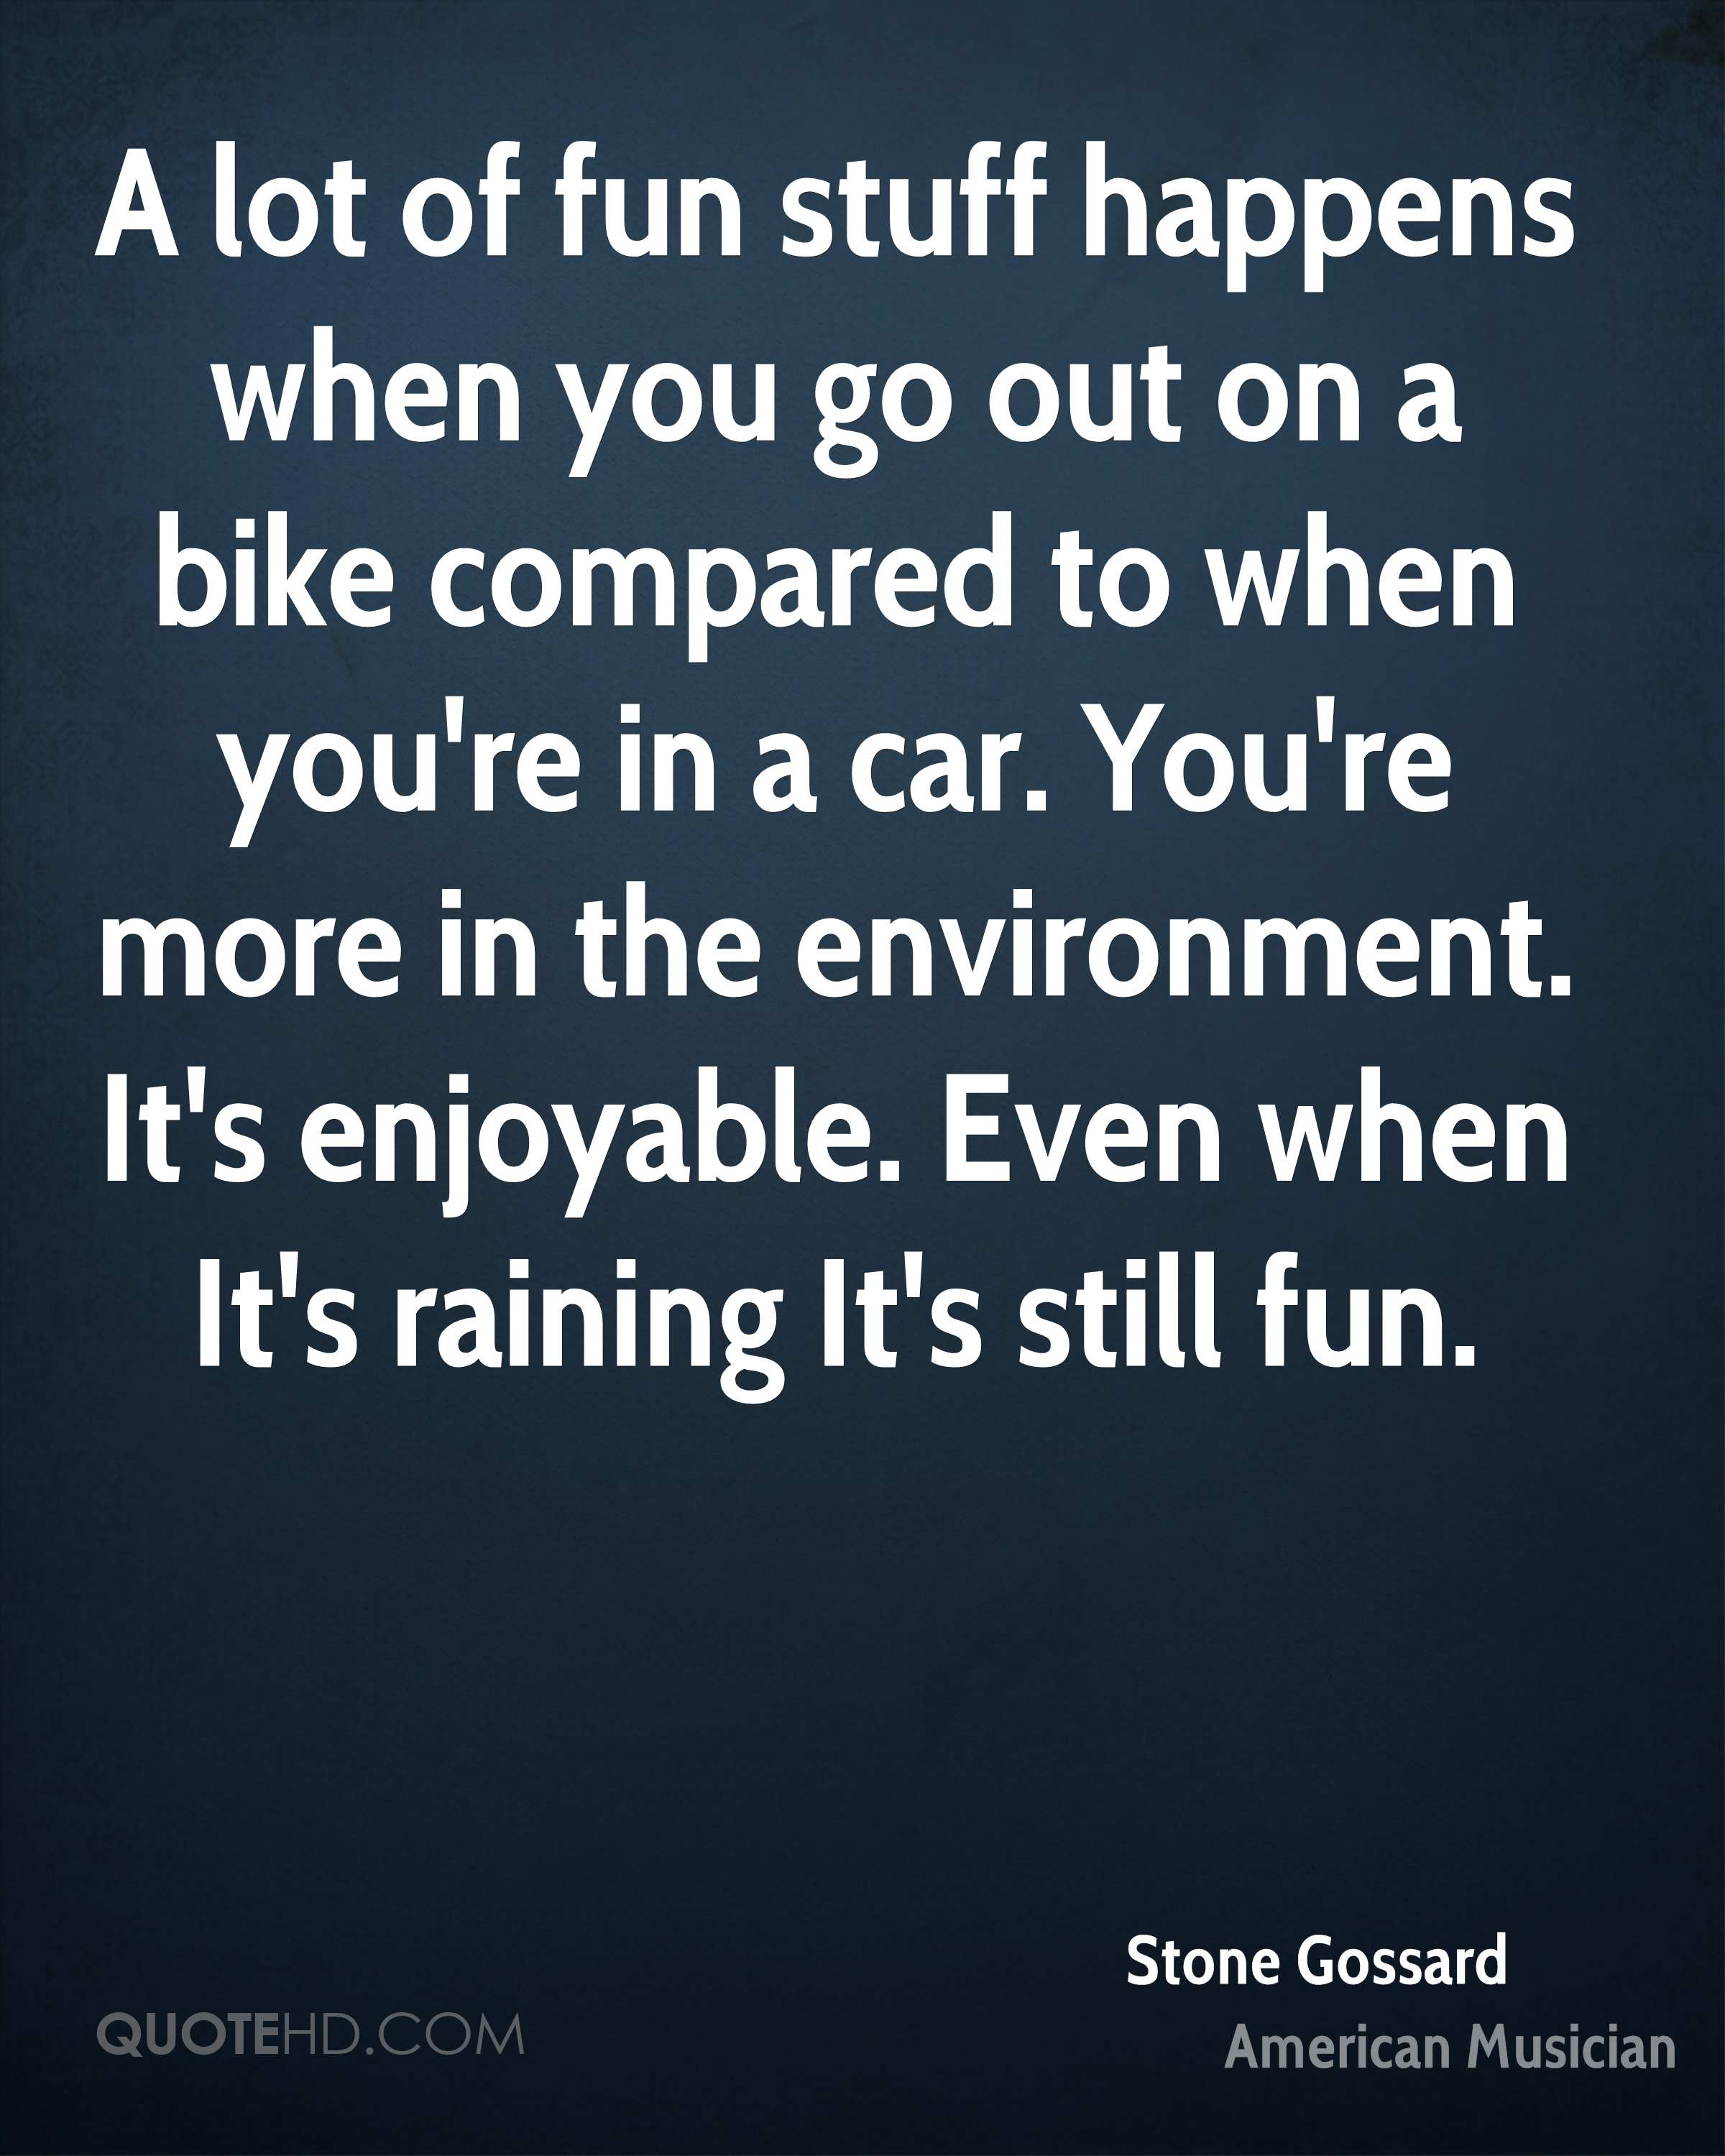 A lot of fun stuff happens when you go out on a bike compared to when you're in a car. You're more in the environment. It's enjoyable. Even when It's raining It's still fun.